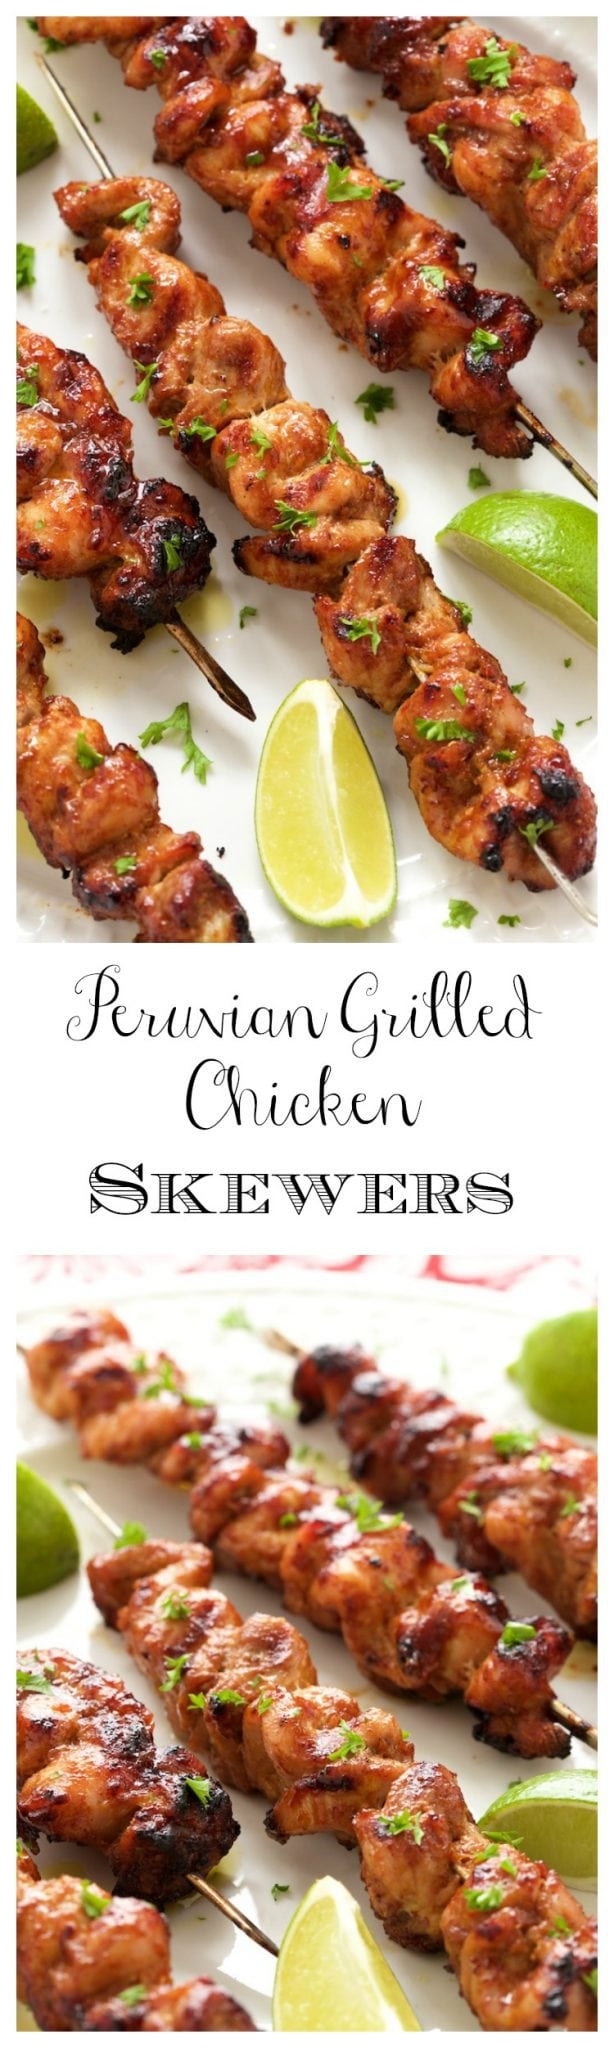 Peruvian Grilled Chicken Skewers - Juicy tender grilled chicken, bursting with vibrant flavor. A delicious fusion of South American and Asian cuisines!